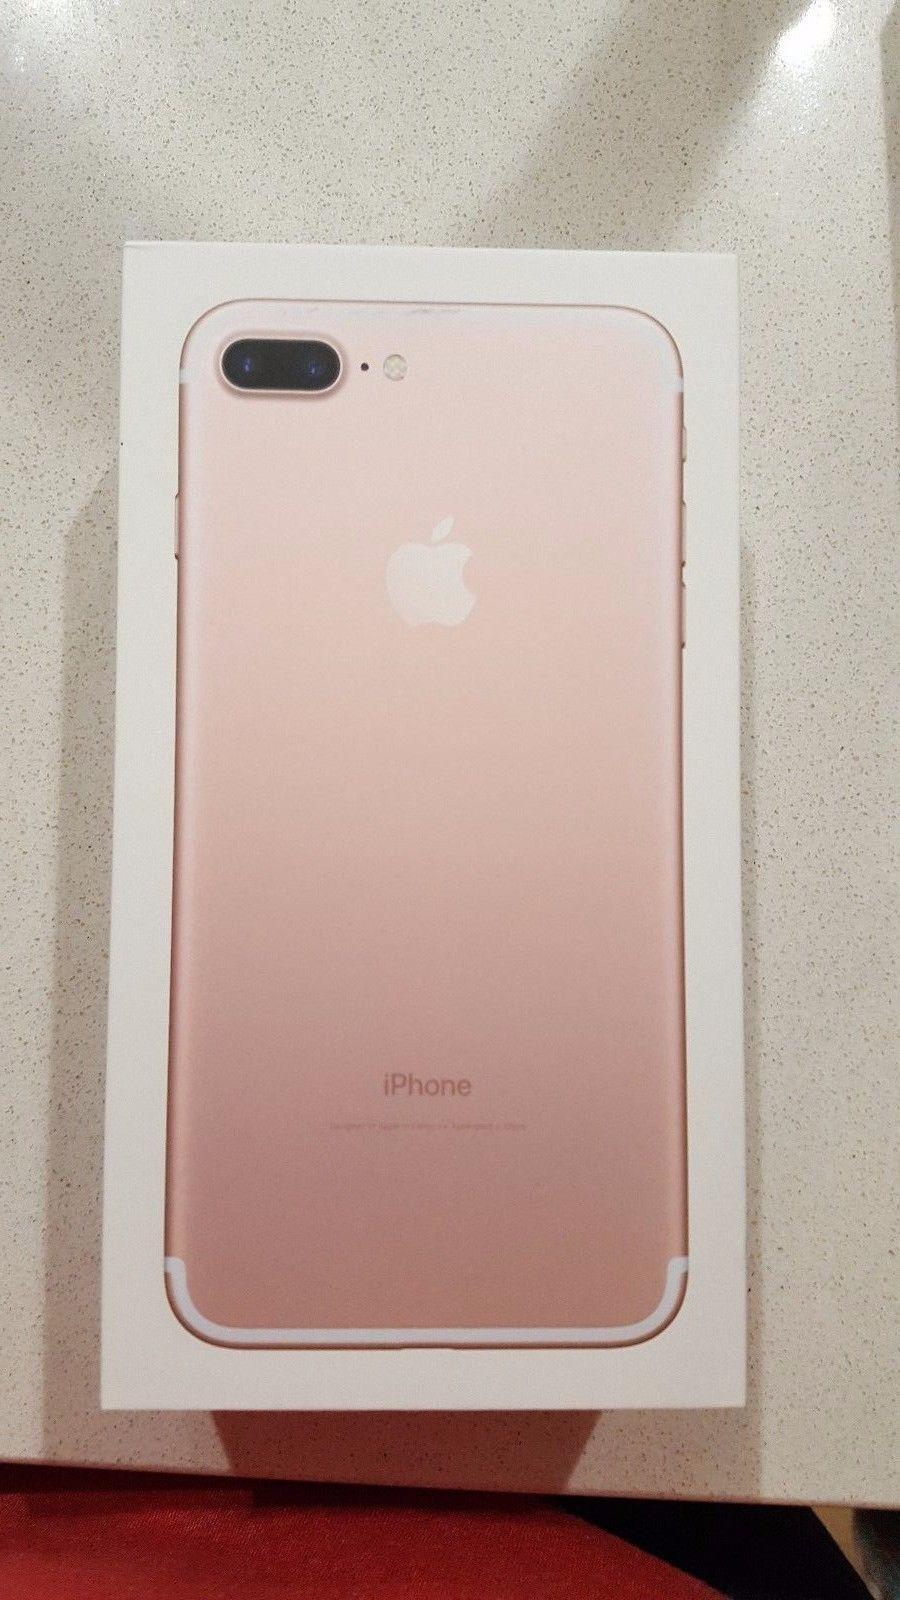 iphone 7 plus 32gb rose gold at t in hand ready to ship reviews rating by yedidya hasson. Black Bedroom Furniture Sets. Home Design Ideas